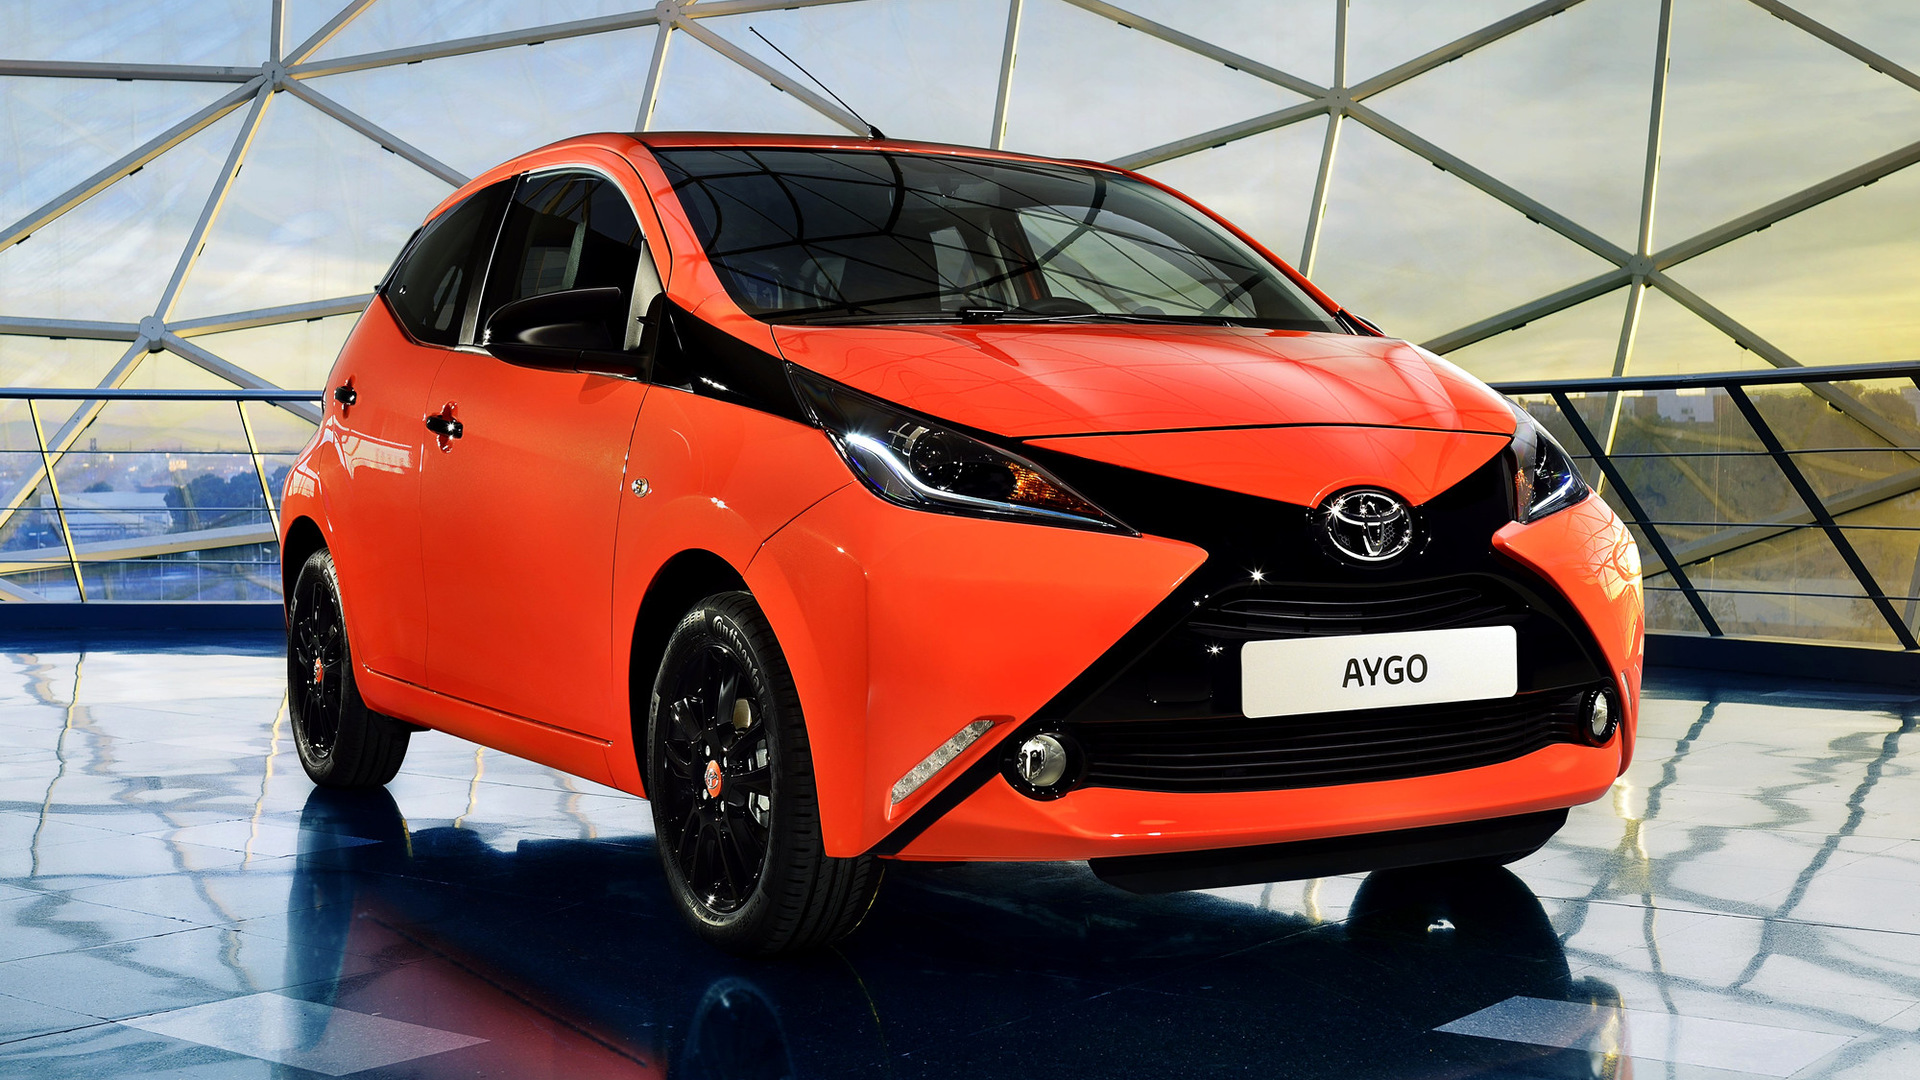 toyota aygo x cite 5 door 2014 wallpapers and hd images. Black Bedroom Furniture Sets. Home Design Ideas